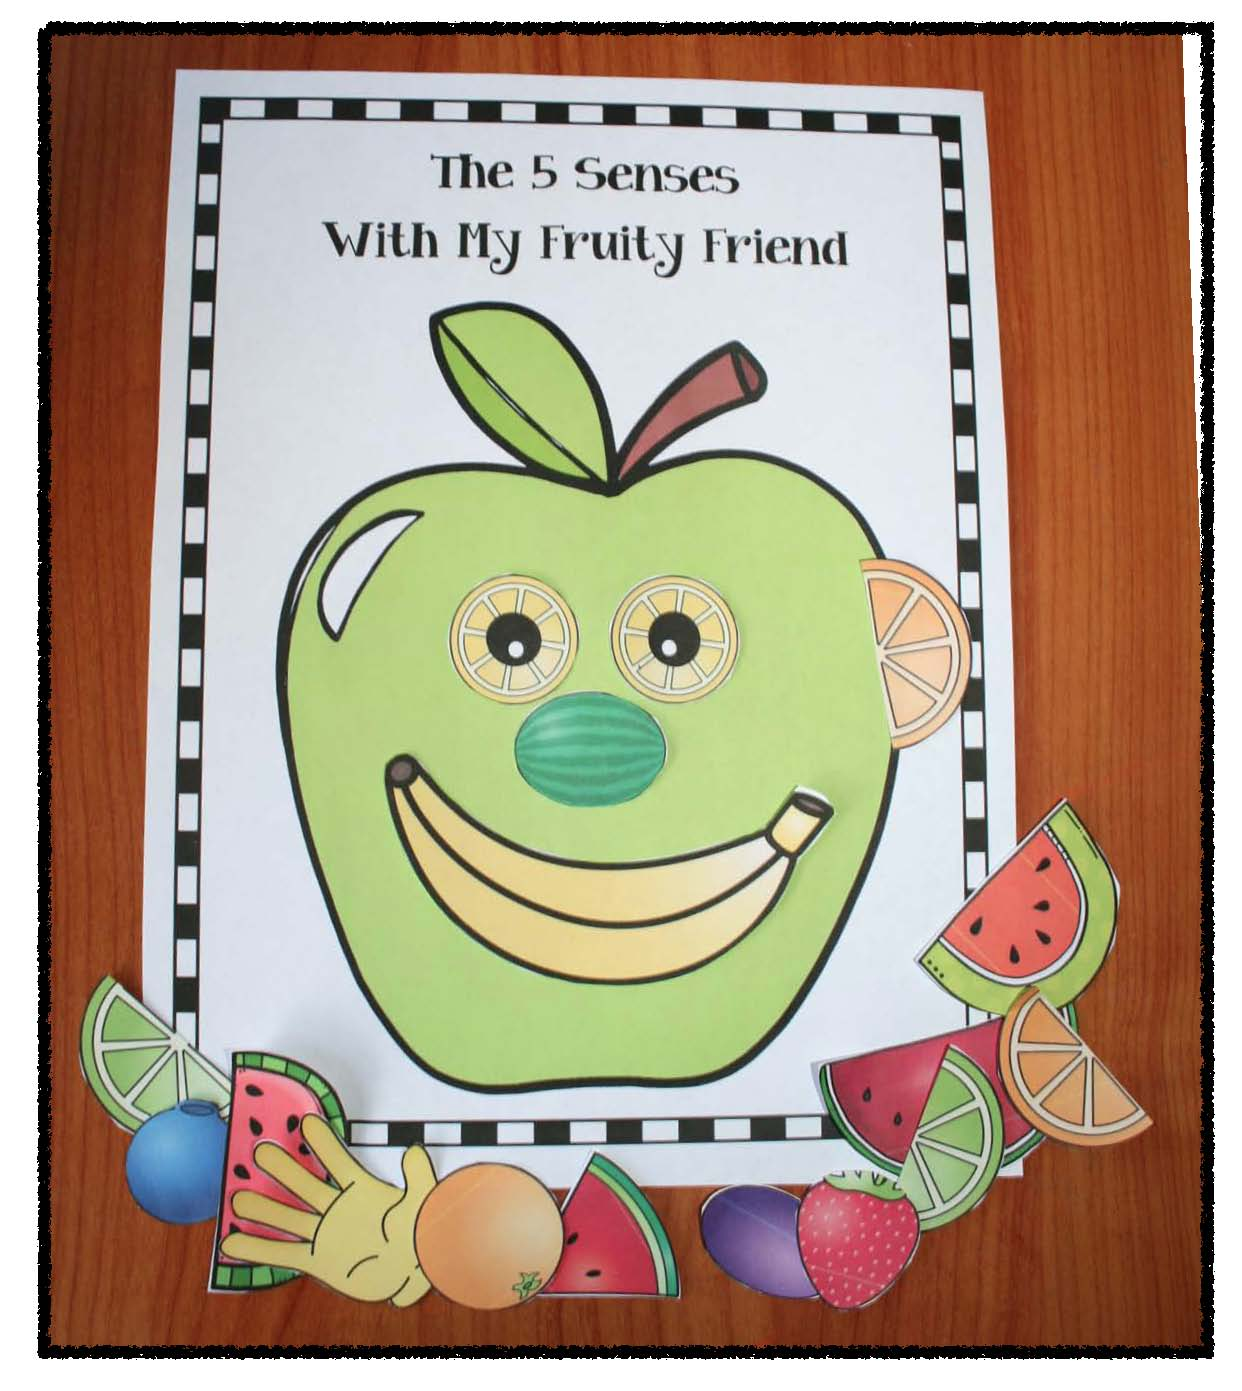 5 senses activities, 5 senses crafts, 5 senses centers, apple activities, apple crafts, apple centers